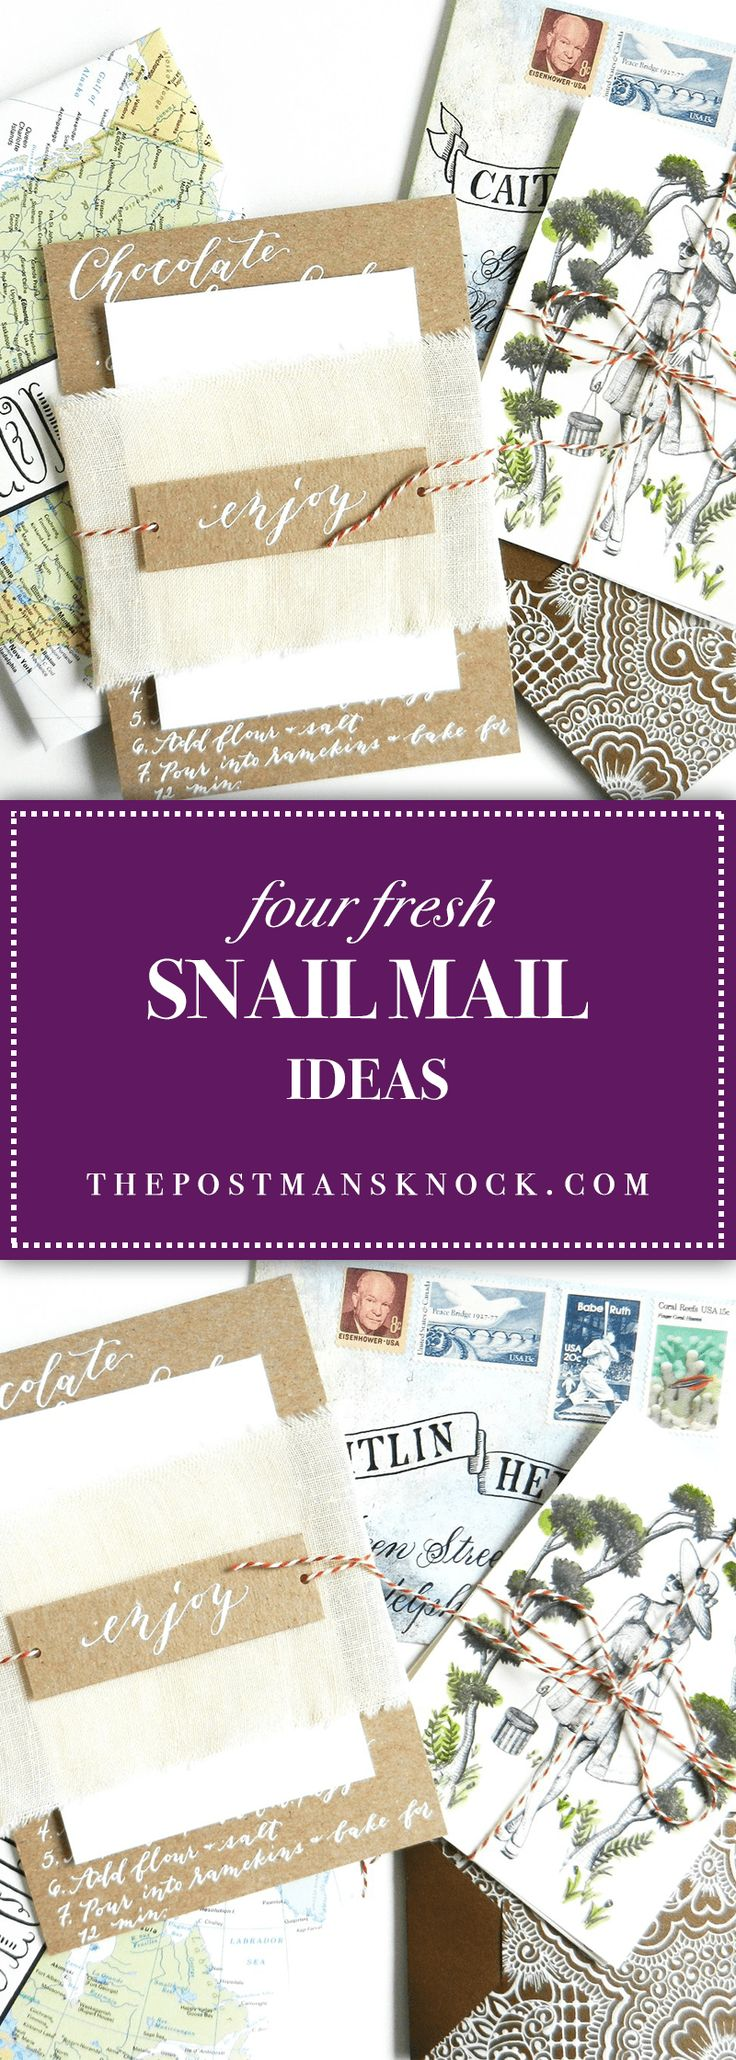 how to make invitation letter for vispurpose%0A Four Fresh Snail Mail Ideas